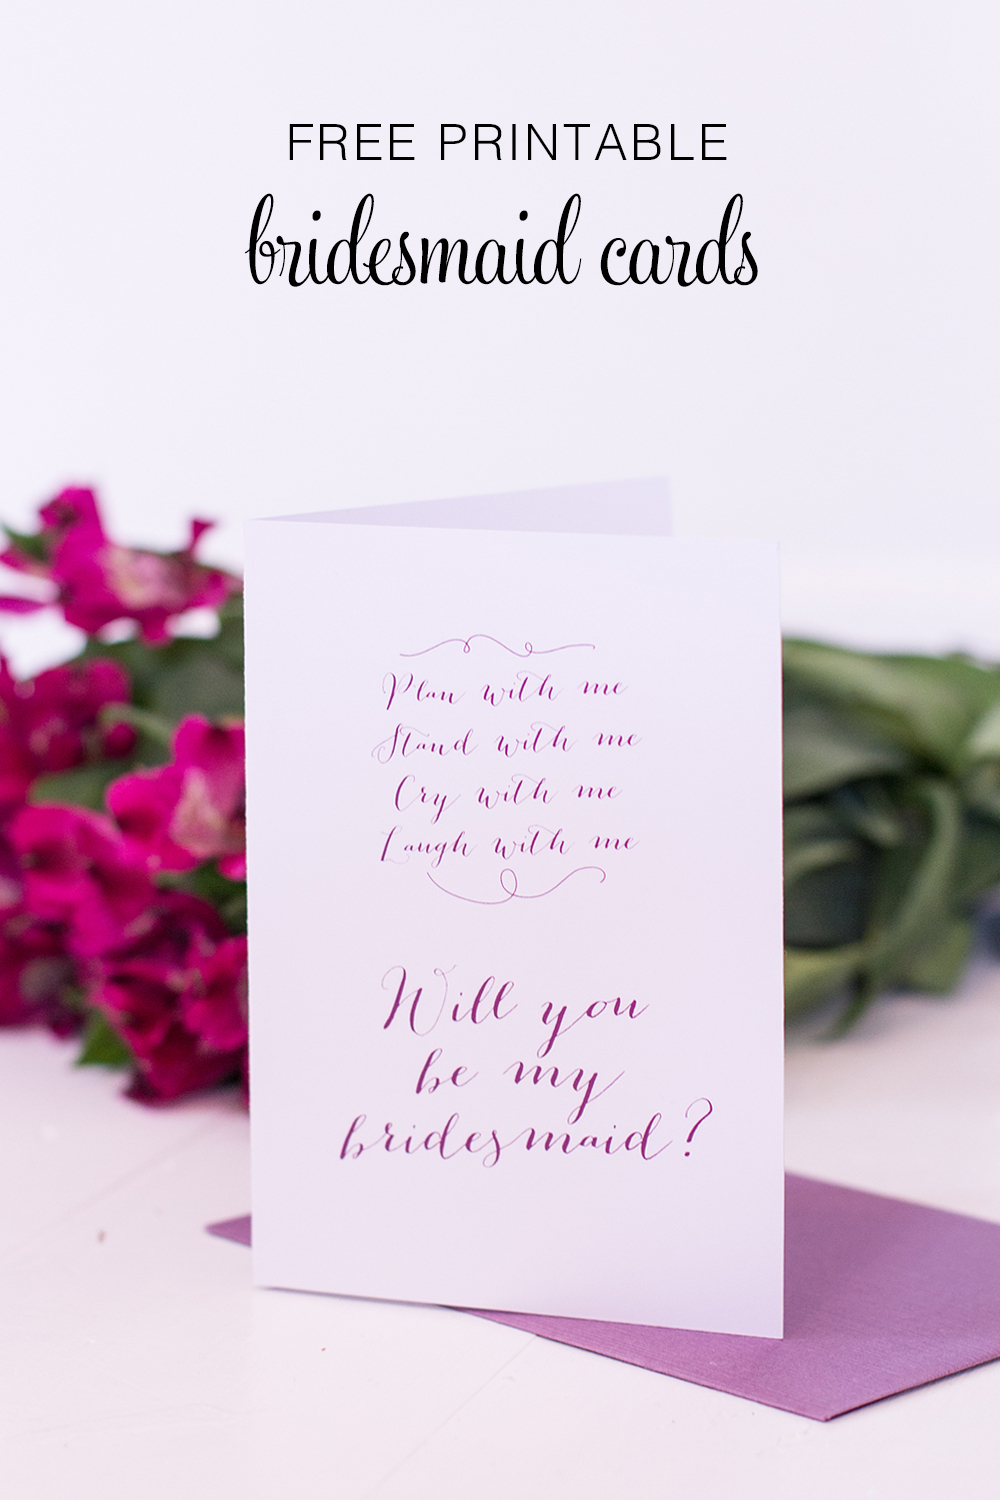 Printable Will You Be My Bridesmaid Cards - Polka Dot Bride - Free Printable Will You Be My Bridesmaid Cards